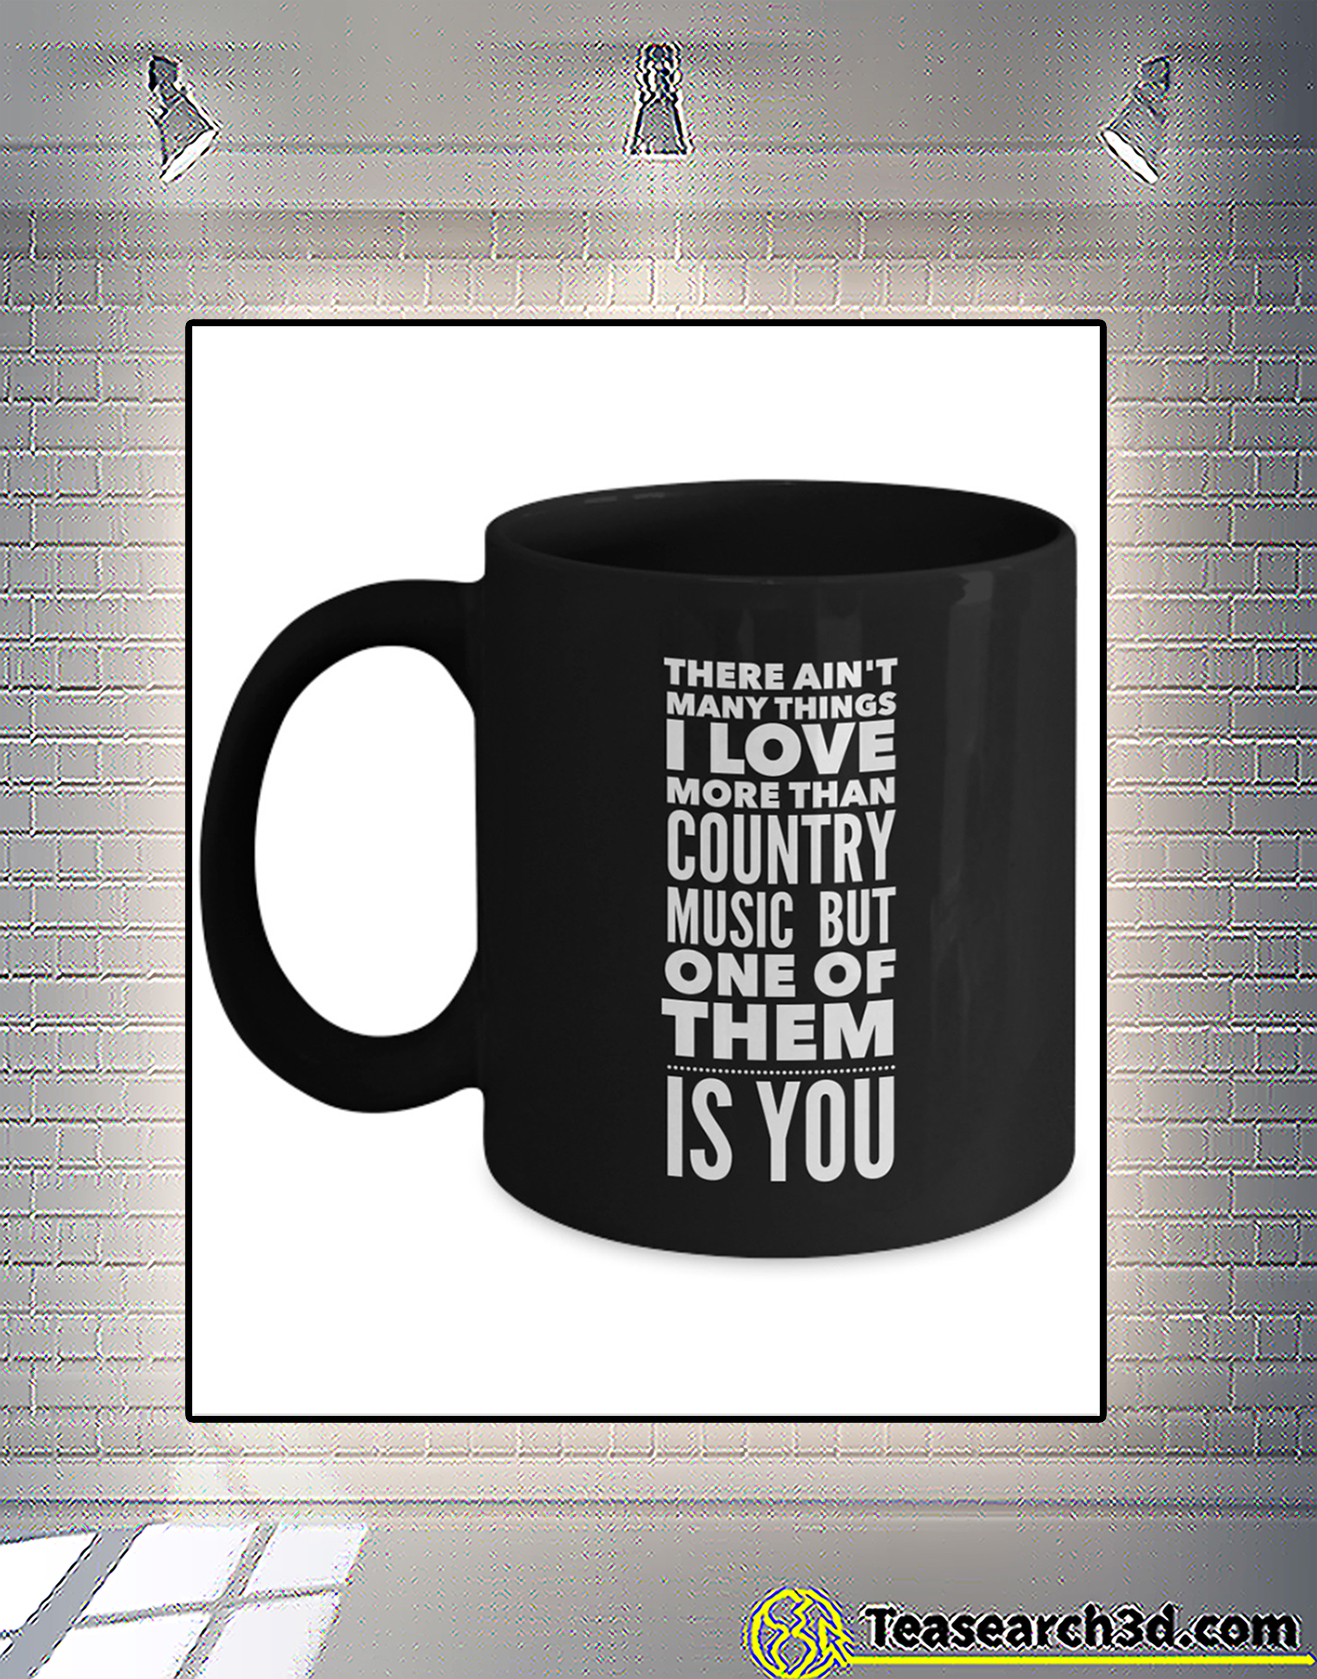 There ain't many things i love more than county music mug 2